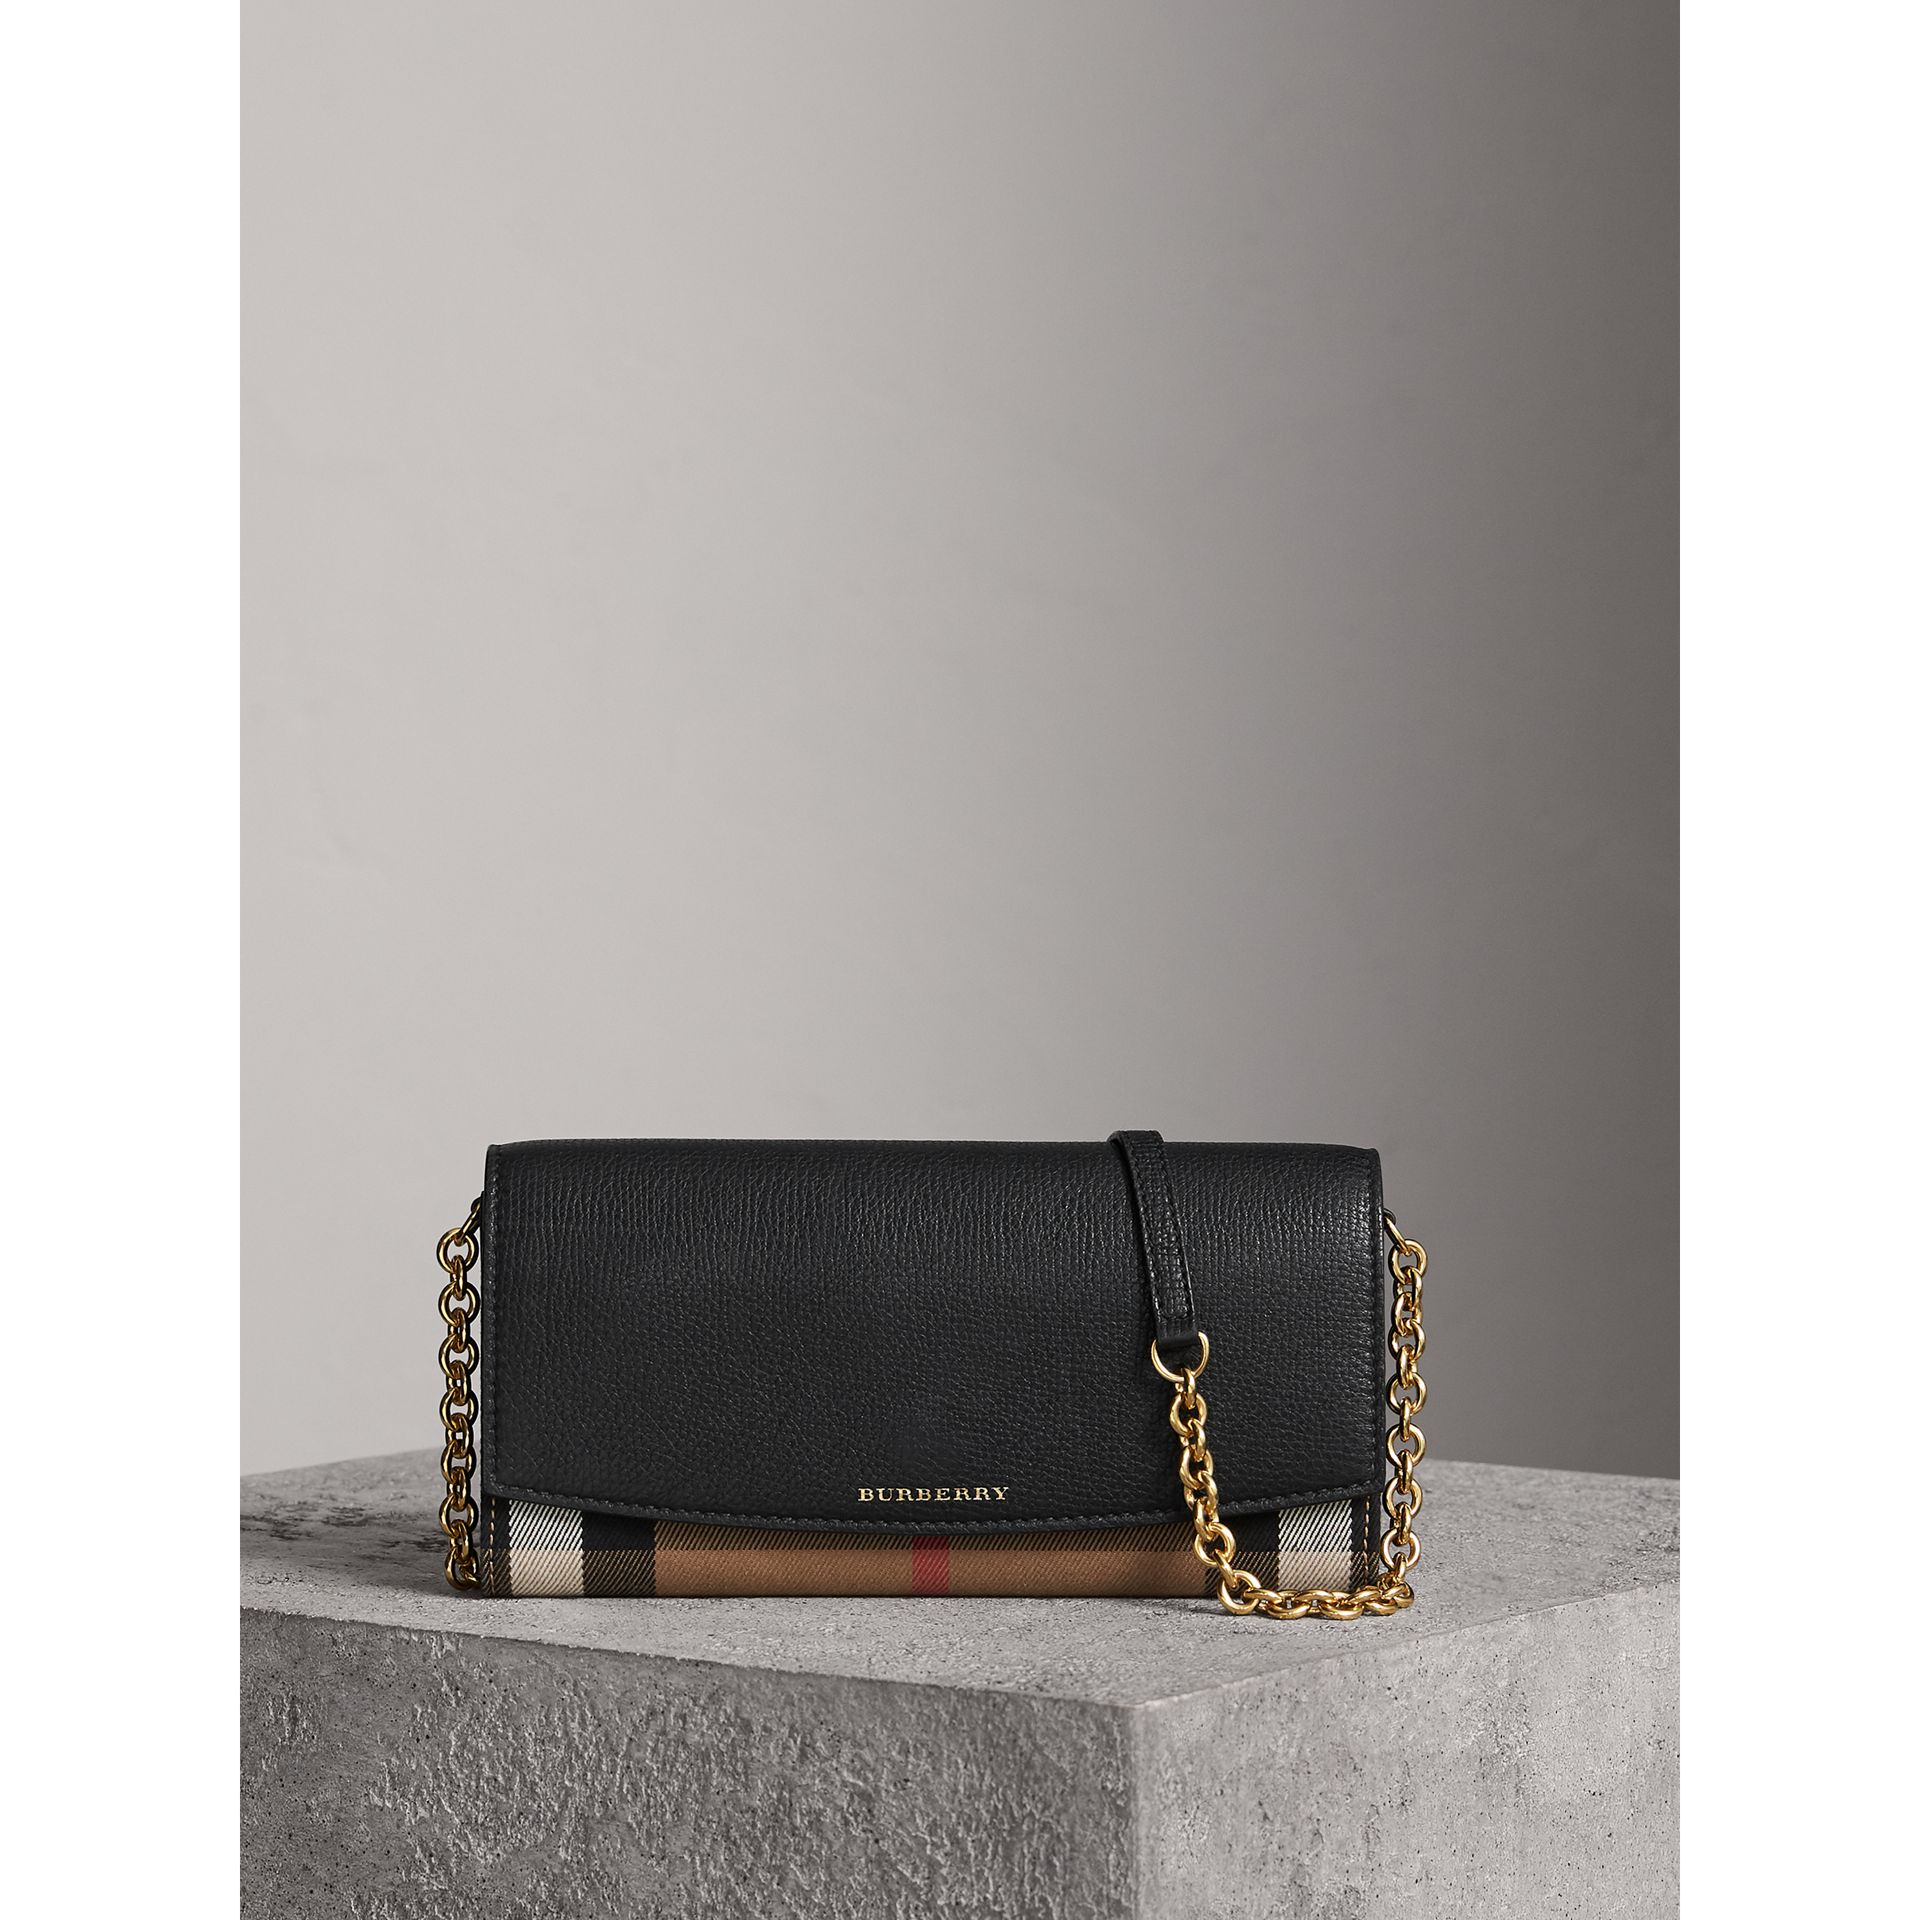 House Check and Leather Wallet with Chain in Black - Women | Burberry - gallery image 7